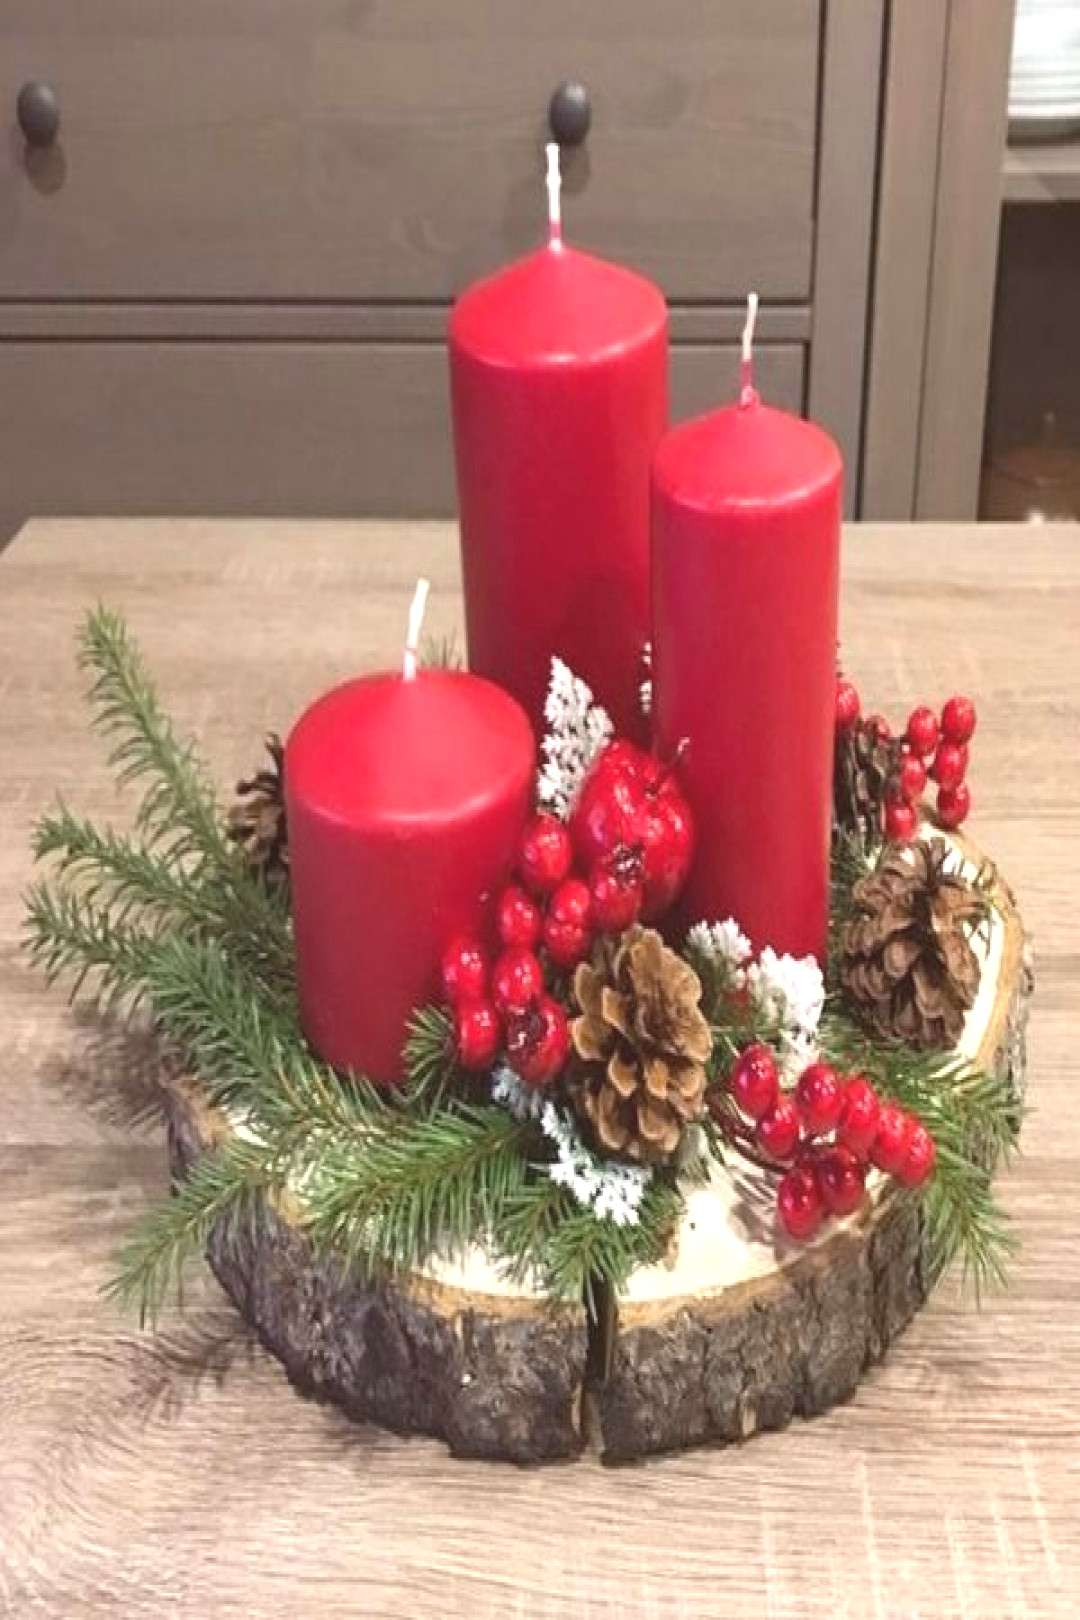 72 Trend Simple Rustic Winter Christmas Centerpiece Simple And Popular Christmas Decorations, Table